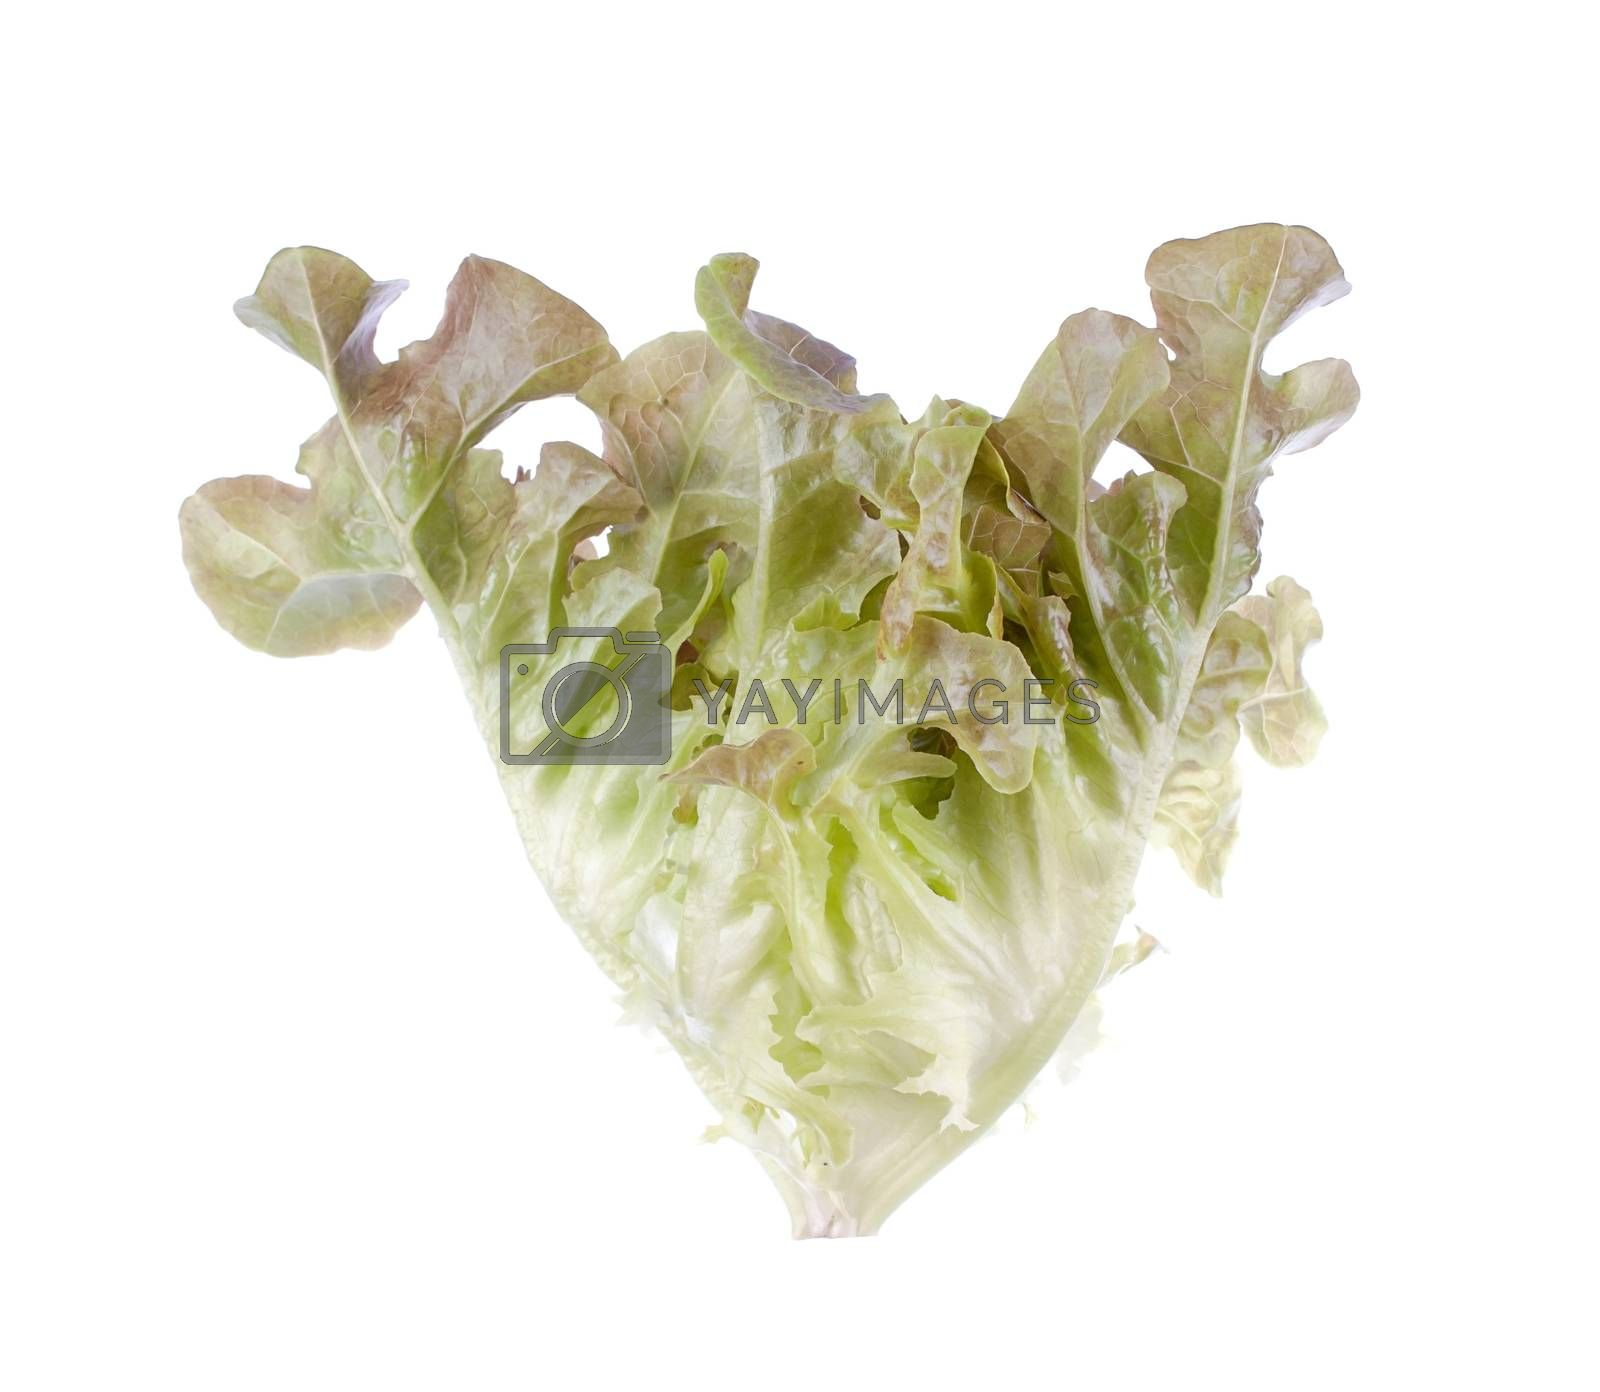 salads leaves close up isolated on white background  by gukgui